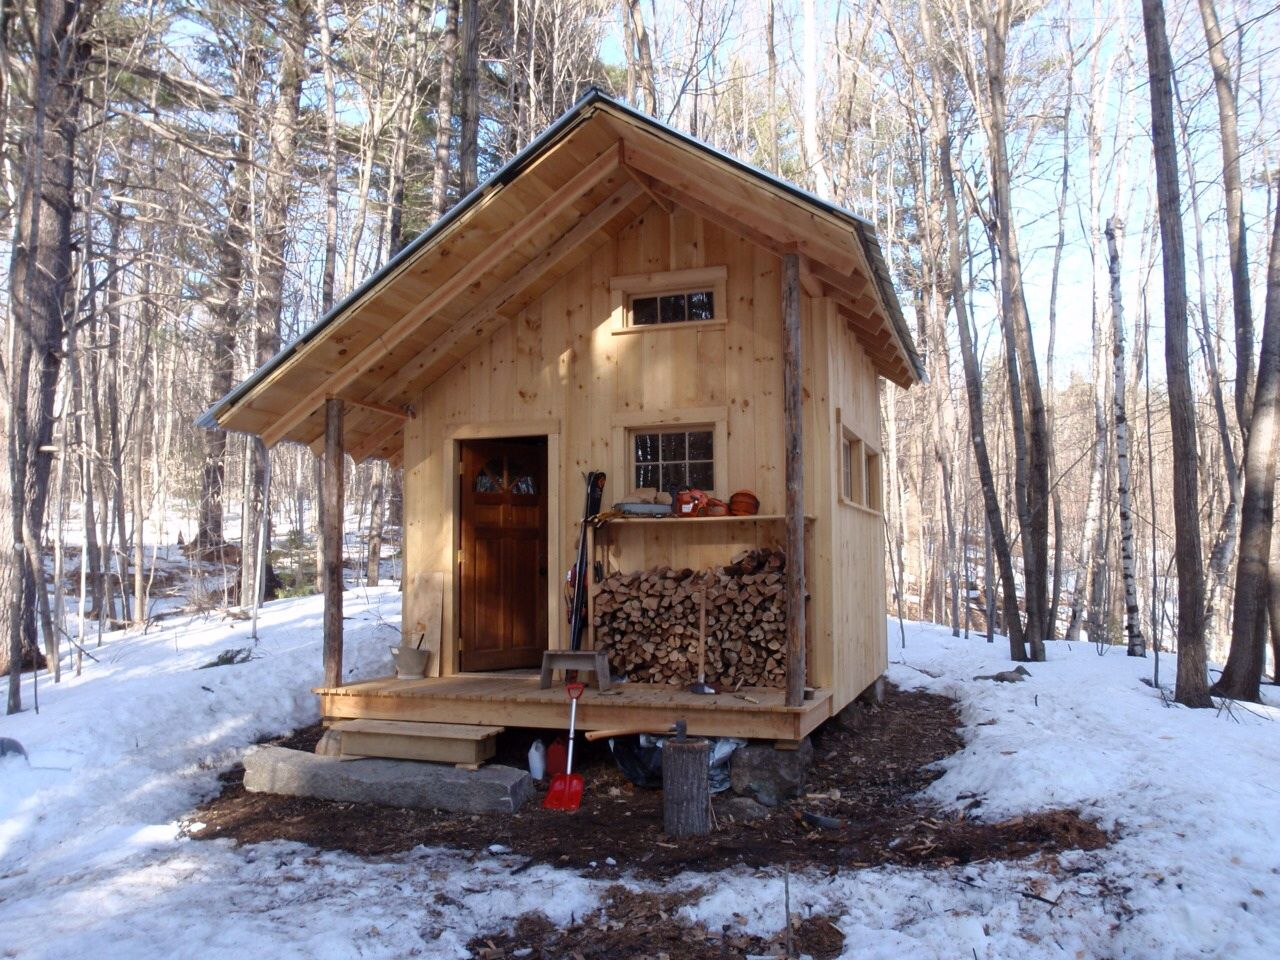 Log cabin in the woods winter - The Fernstone Cabin Tamworth New Hampshire Built With Local Materials By Trevor Curtin Of Grandfather Oak Carpentry Perfect Little Cabin Inthe Woods